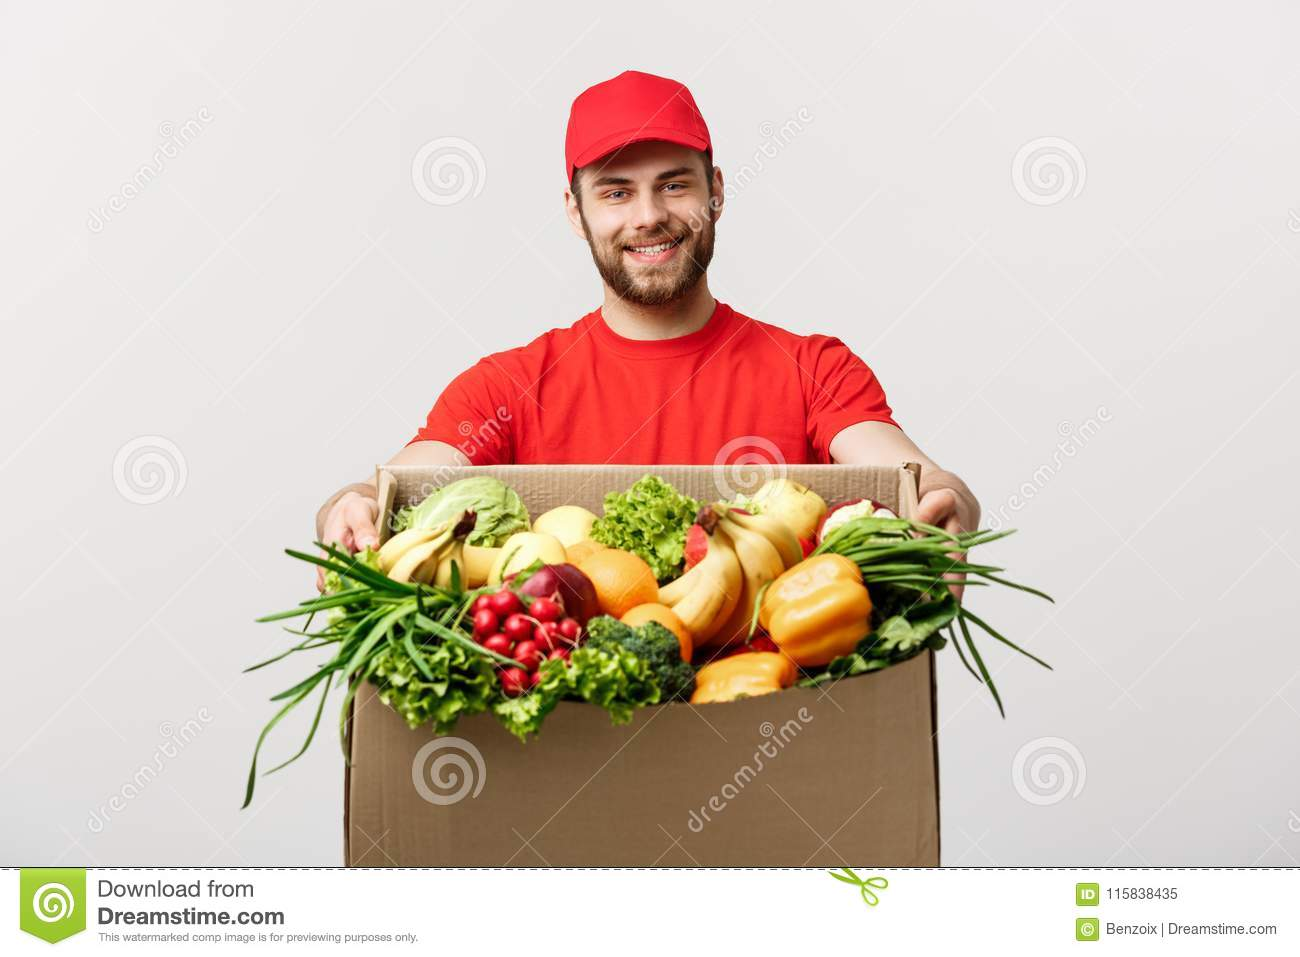 Delivery Concept - Handsome Cacasian delivery man carrying package box of grocery food and drink from store. Isolated on